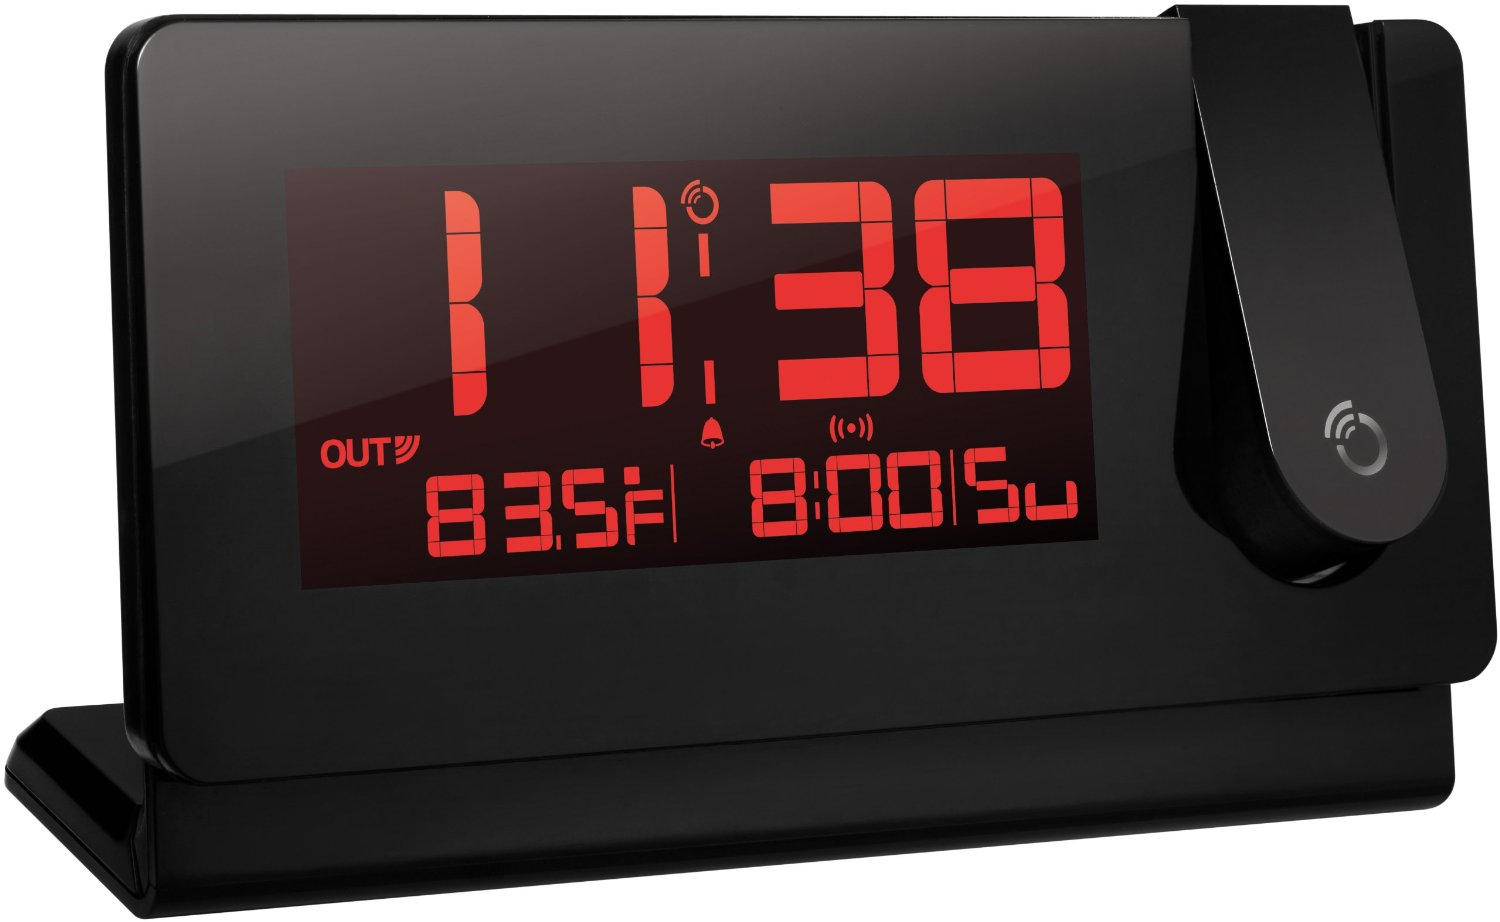 best projection clock Amazoncouk: projector clocks 1-16 of 3,135 results for projector clocks atomic projection clock with temperature tg644.